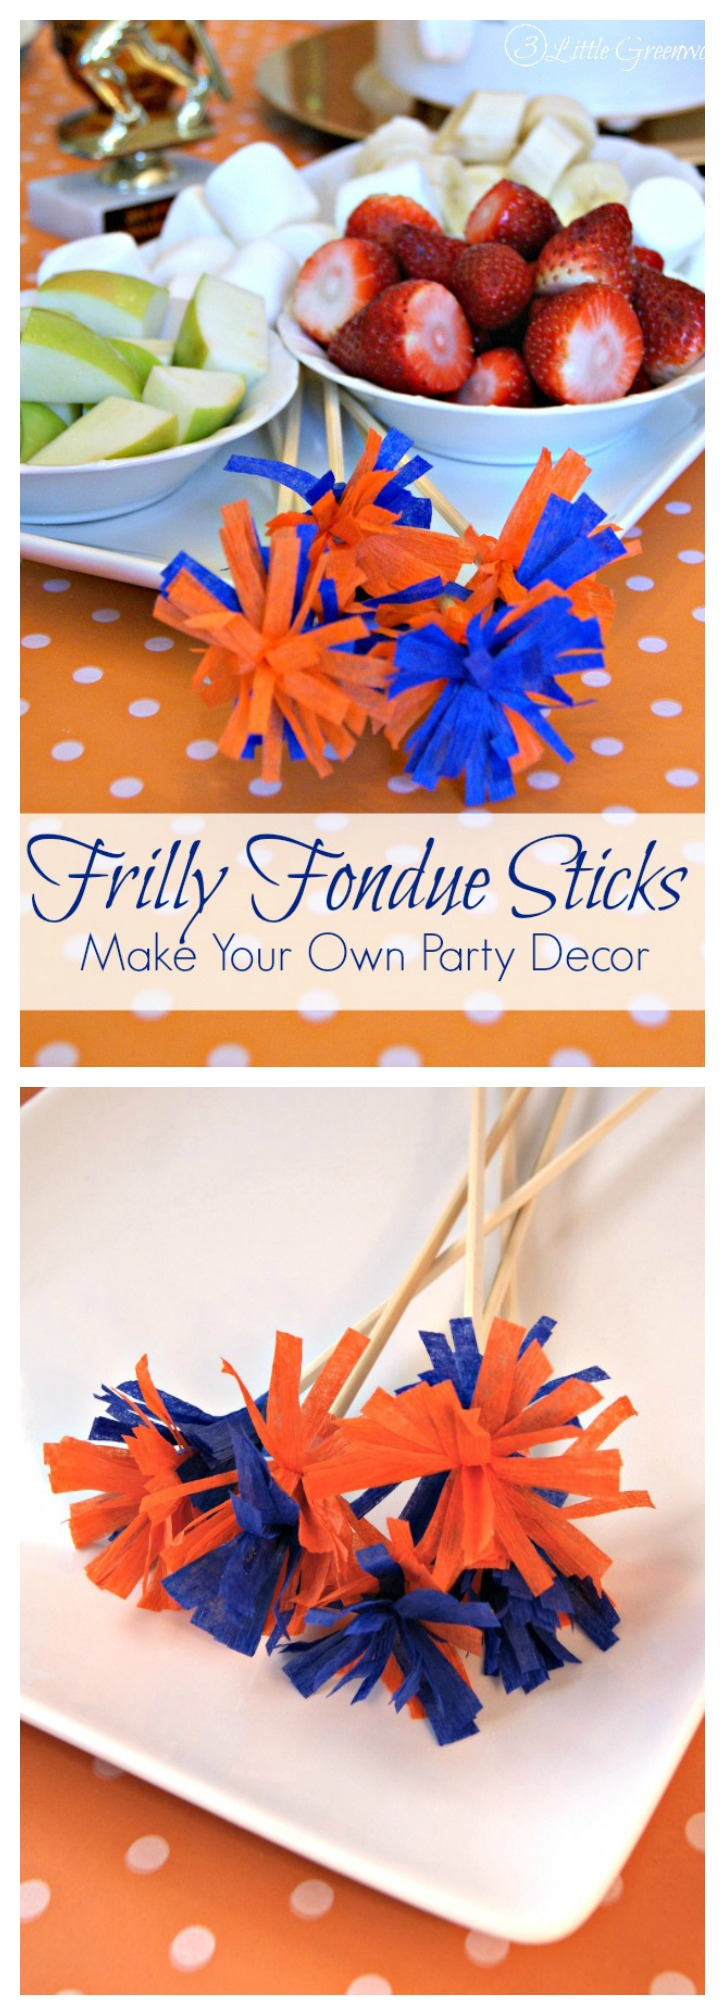 DIY Fondue Sticks ~ A Perfect Way to Add Fun to Your Next Party! Put these on your party planning checklist! // 3 Little Greenwoods